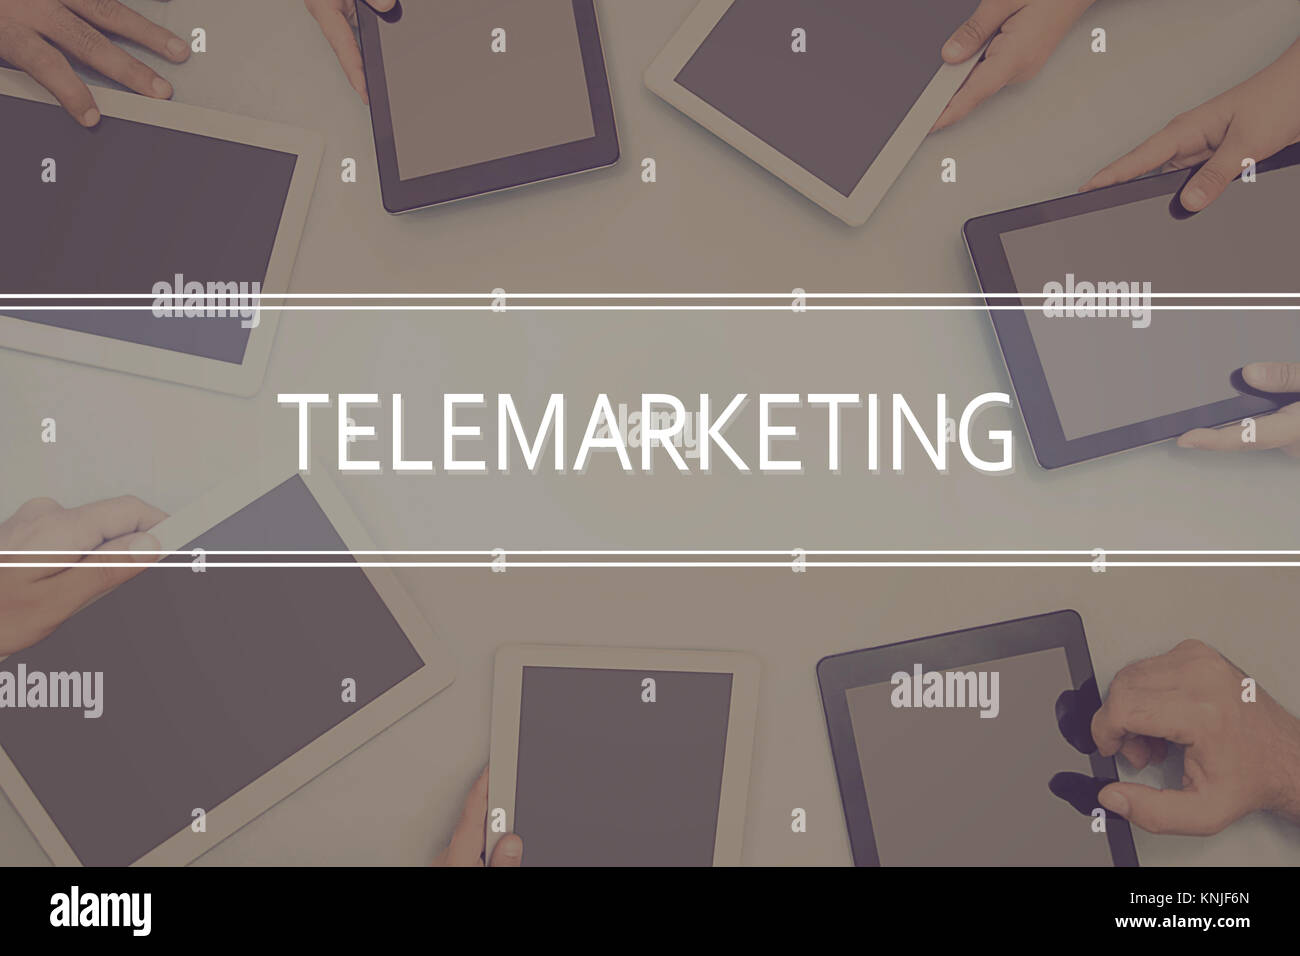 TELEMARKETING CONCEPT Business Concept. Stock Photo